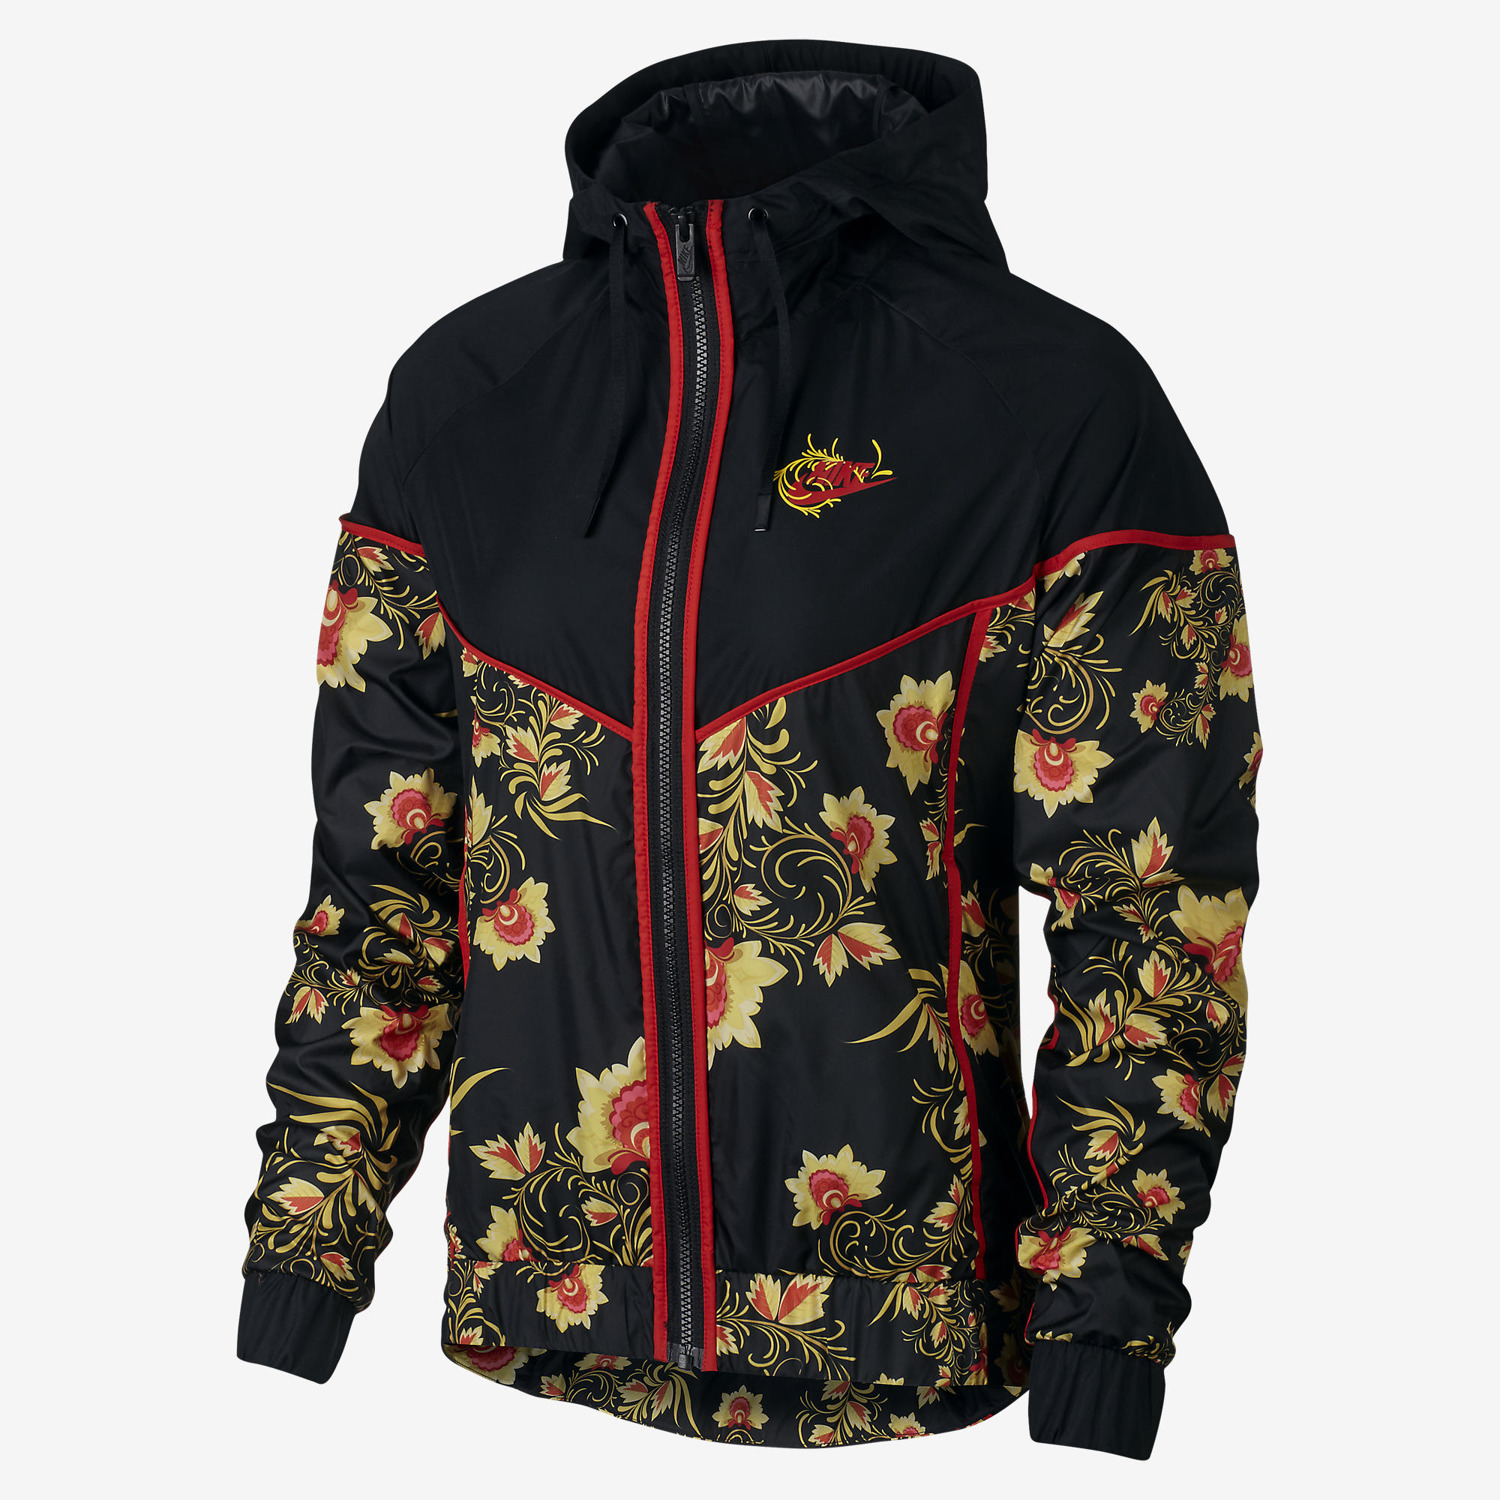 Nike Wmns Nsw Floral Windrunner Printed Jacket Sporting